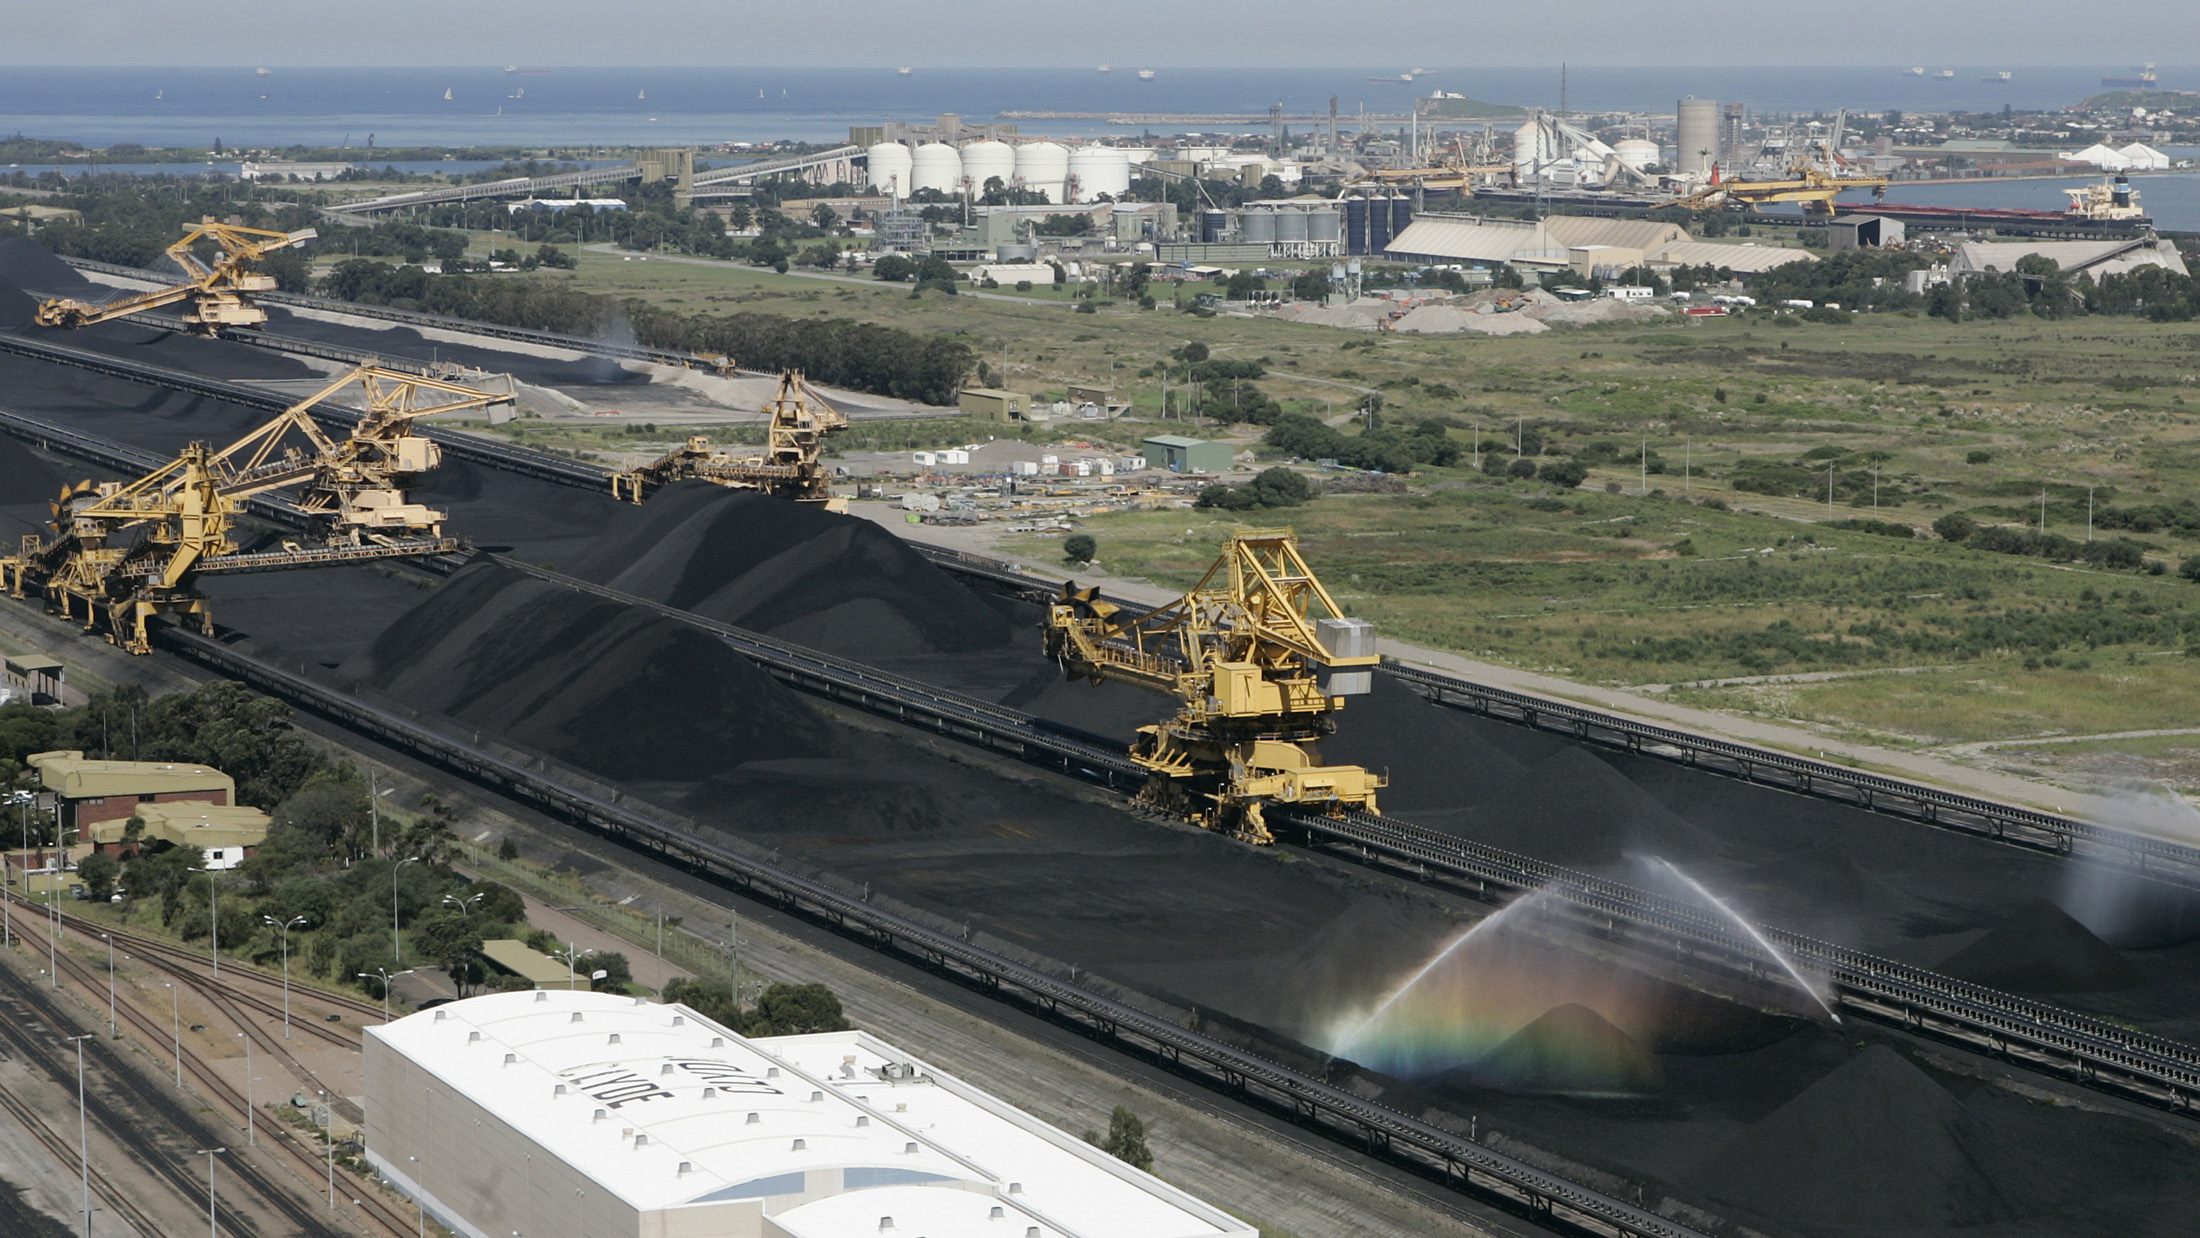 Coal is kept moist as it sits in piles waiting to be loaded onto container ships at the world's biggest coal export terminal in Newcastle, located 120 km (75 miles) north of Sydney March 11, 2007. Australian coal exports from Newcastle port rebounded about 40 percent in the past week, from a five-month low, as the port's facilities resumed following a disruption last week due to planned maintenance. Picture taken March 11, 2007. REUTERS/David Gray (AUSTRALIA) - GM1DVAAXAVAA